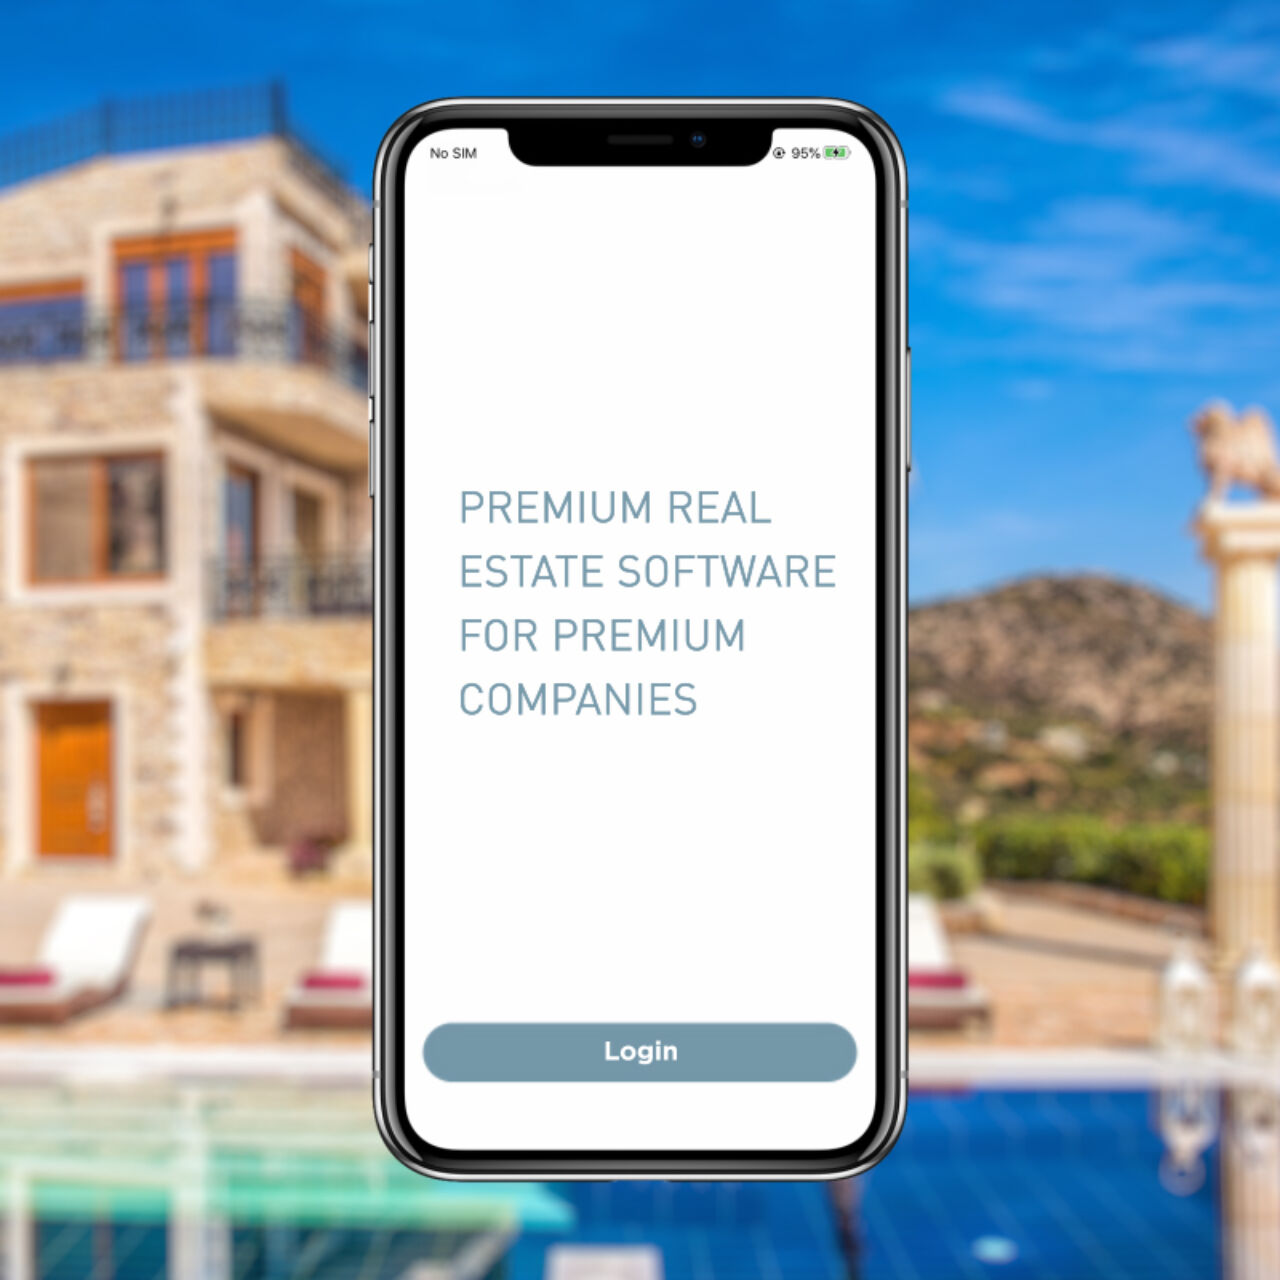 Real Estate Software for premium companies